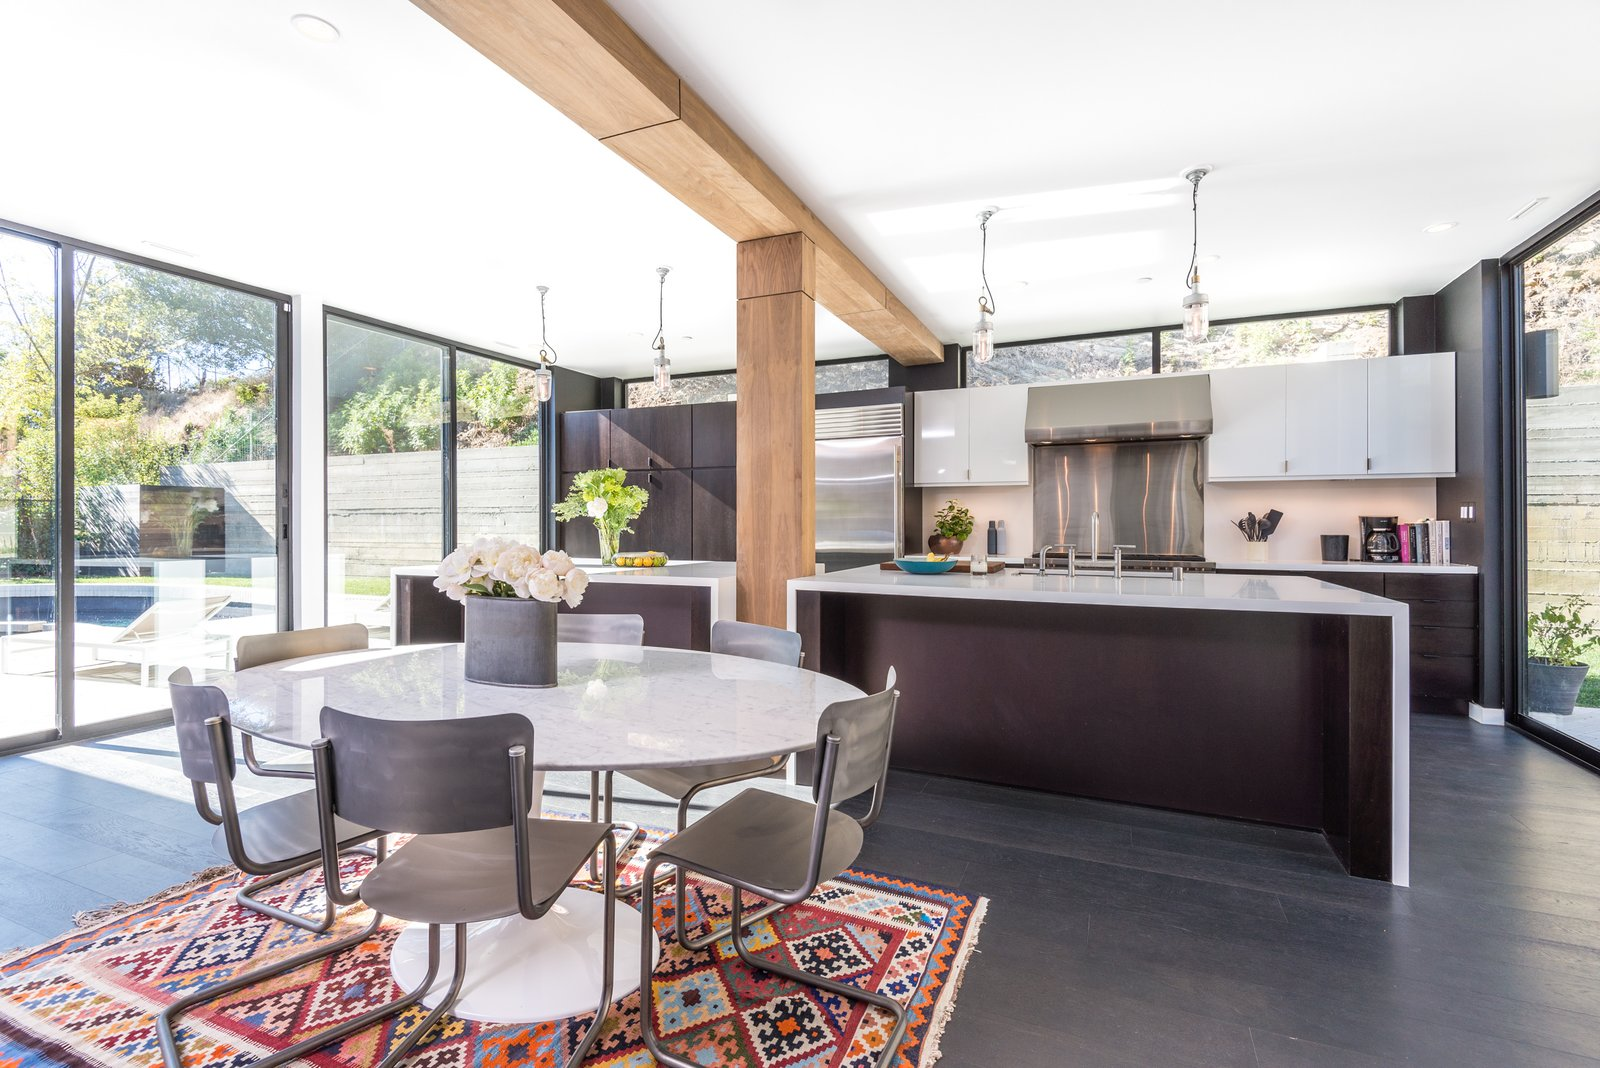 Dining Room, Chair, Dark Hardwood Floor, Table, Pendant Lighting, and Rug Floor Bright interiors are thanks to high ceilings and ample glazing.  Photo 10 of 21 in Here Are the Modern Prefab Designs That Amazon's Investing In